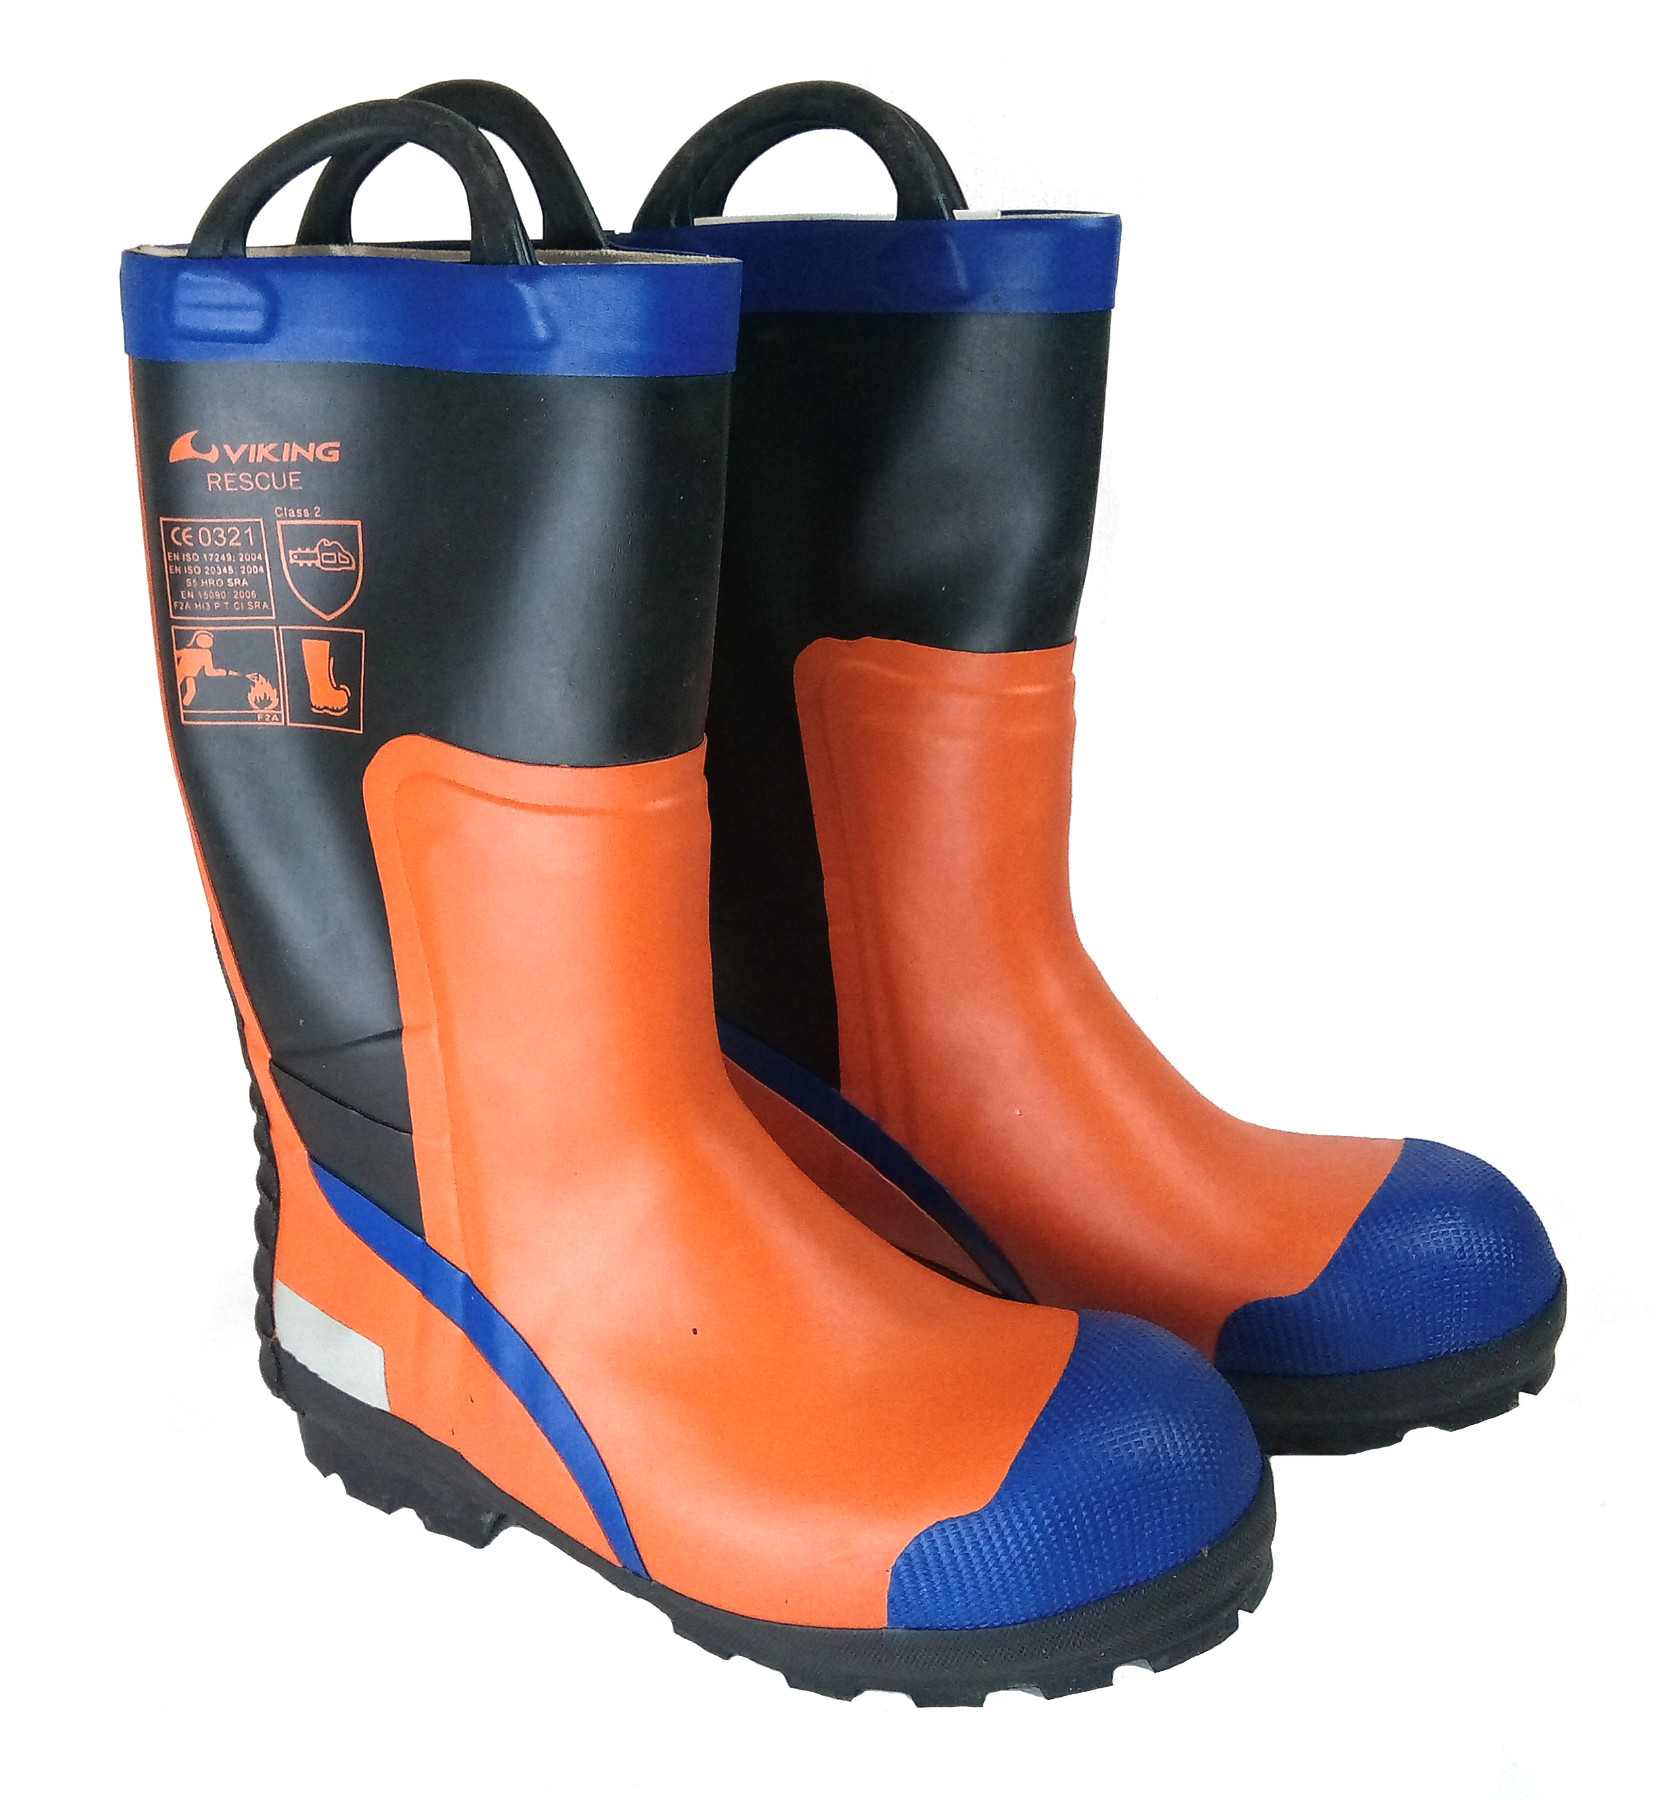 32bdceb0e89 Viking Rescue Chainsaw Protection Firefighter Orange Hi-Vis Safety Boots,  Size - 11